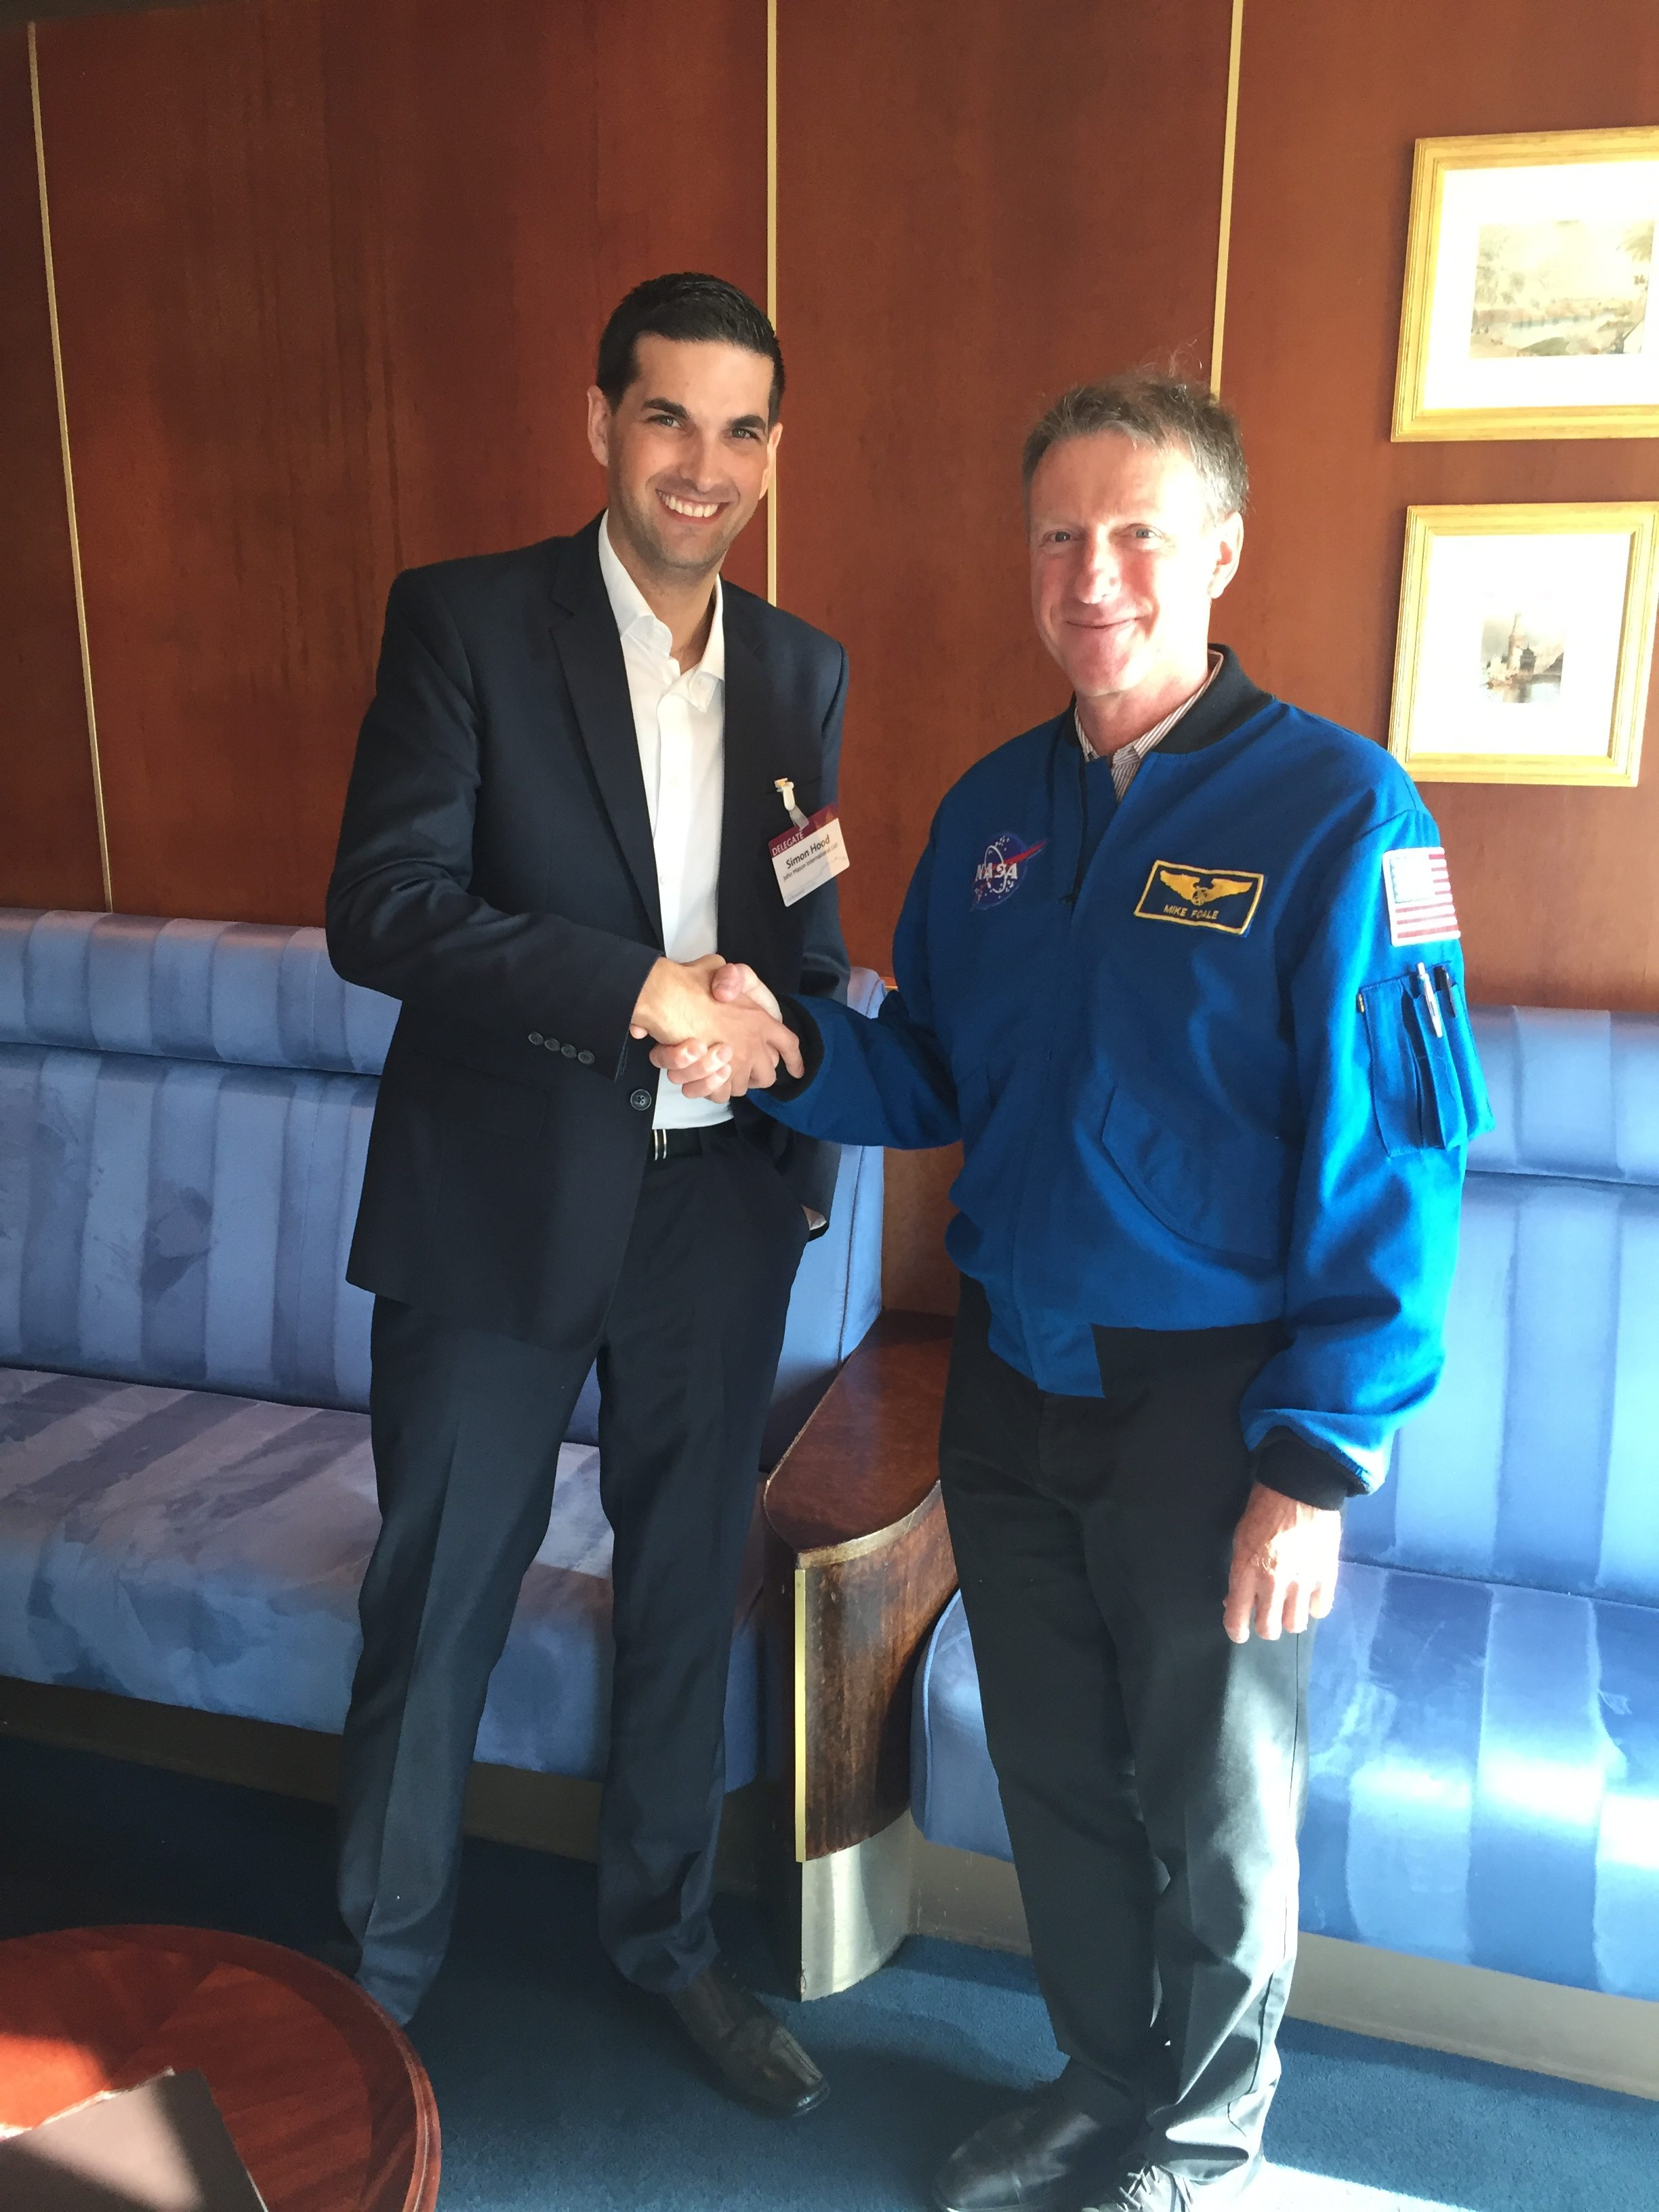 John Mason International's Simon Hood with former NASA astronaut Michael Foale, CBE.